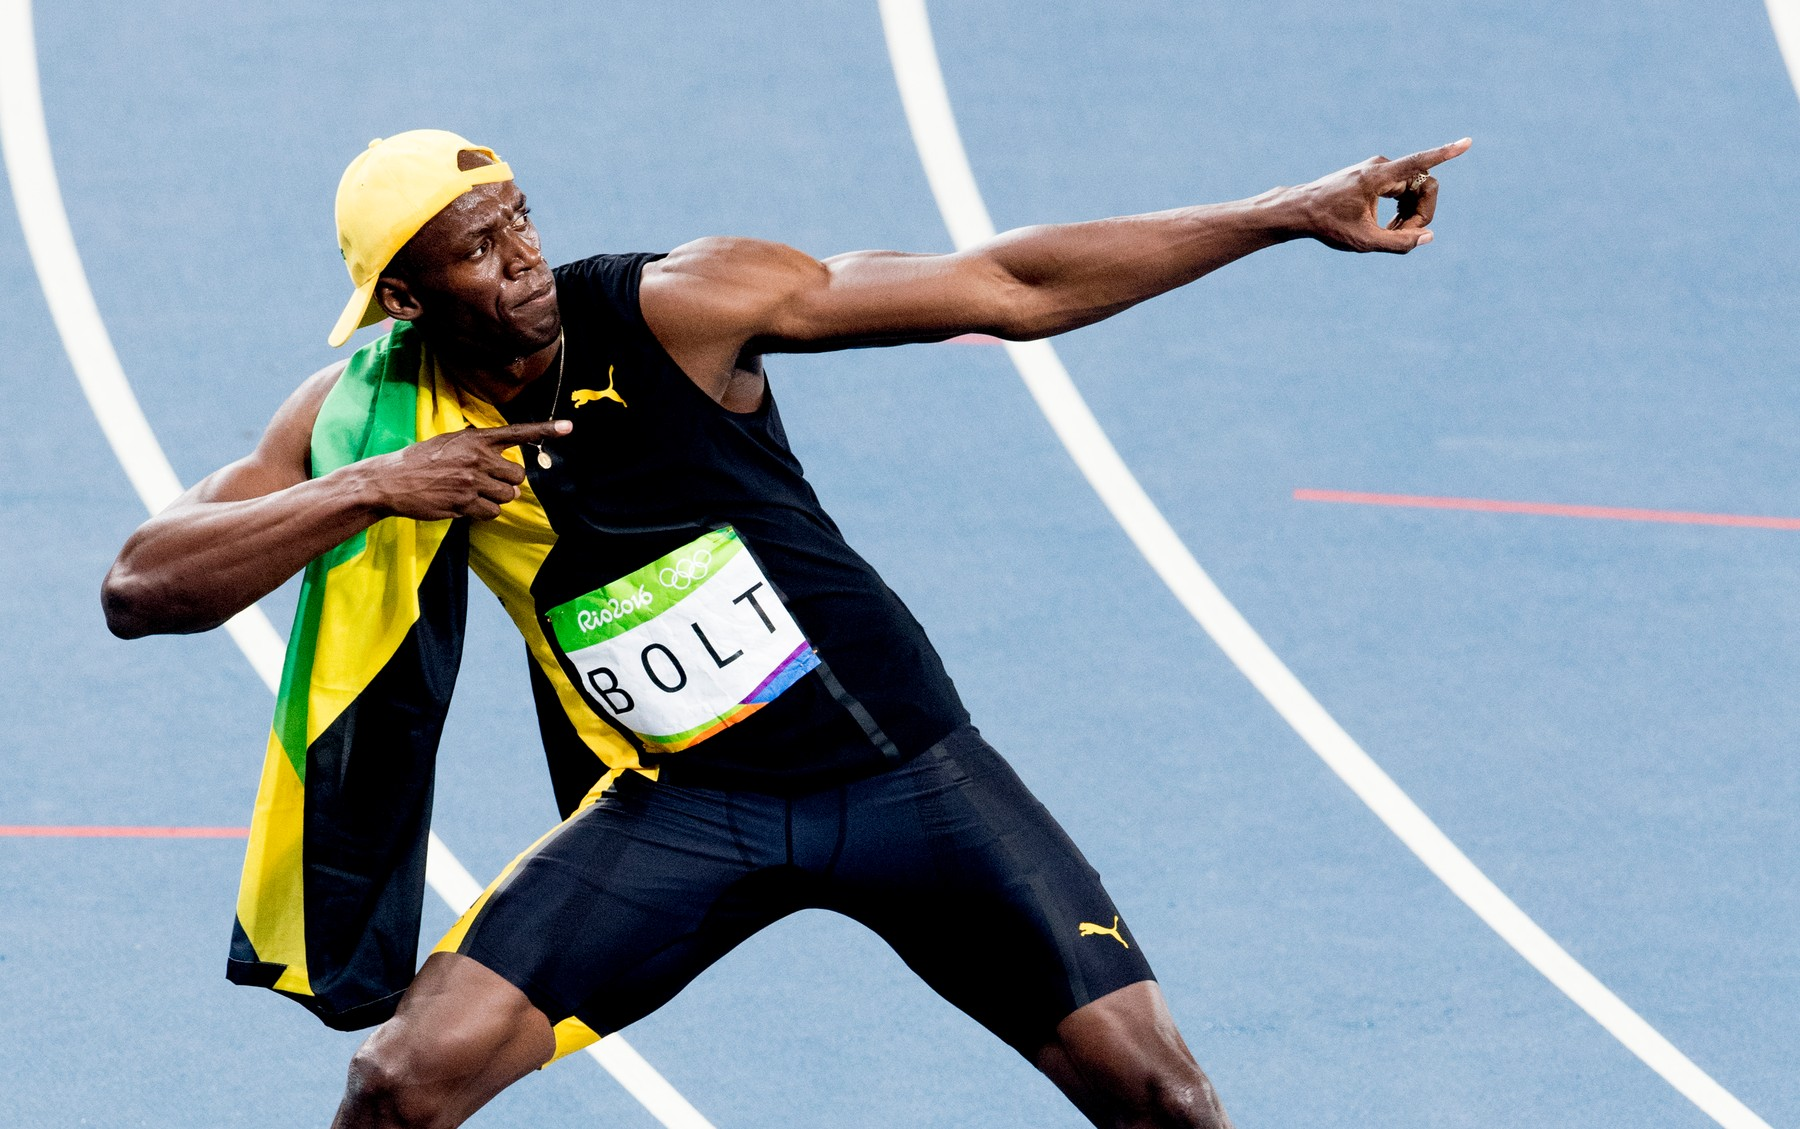 Rio 2016 - Men's 100m - Usain Bolt Wins 3rd Title